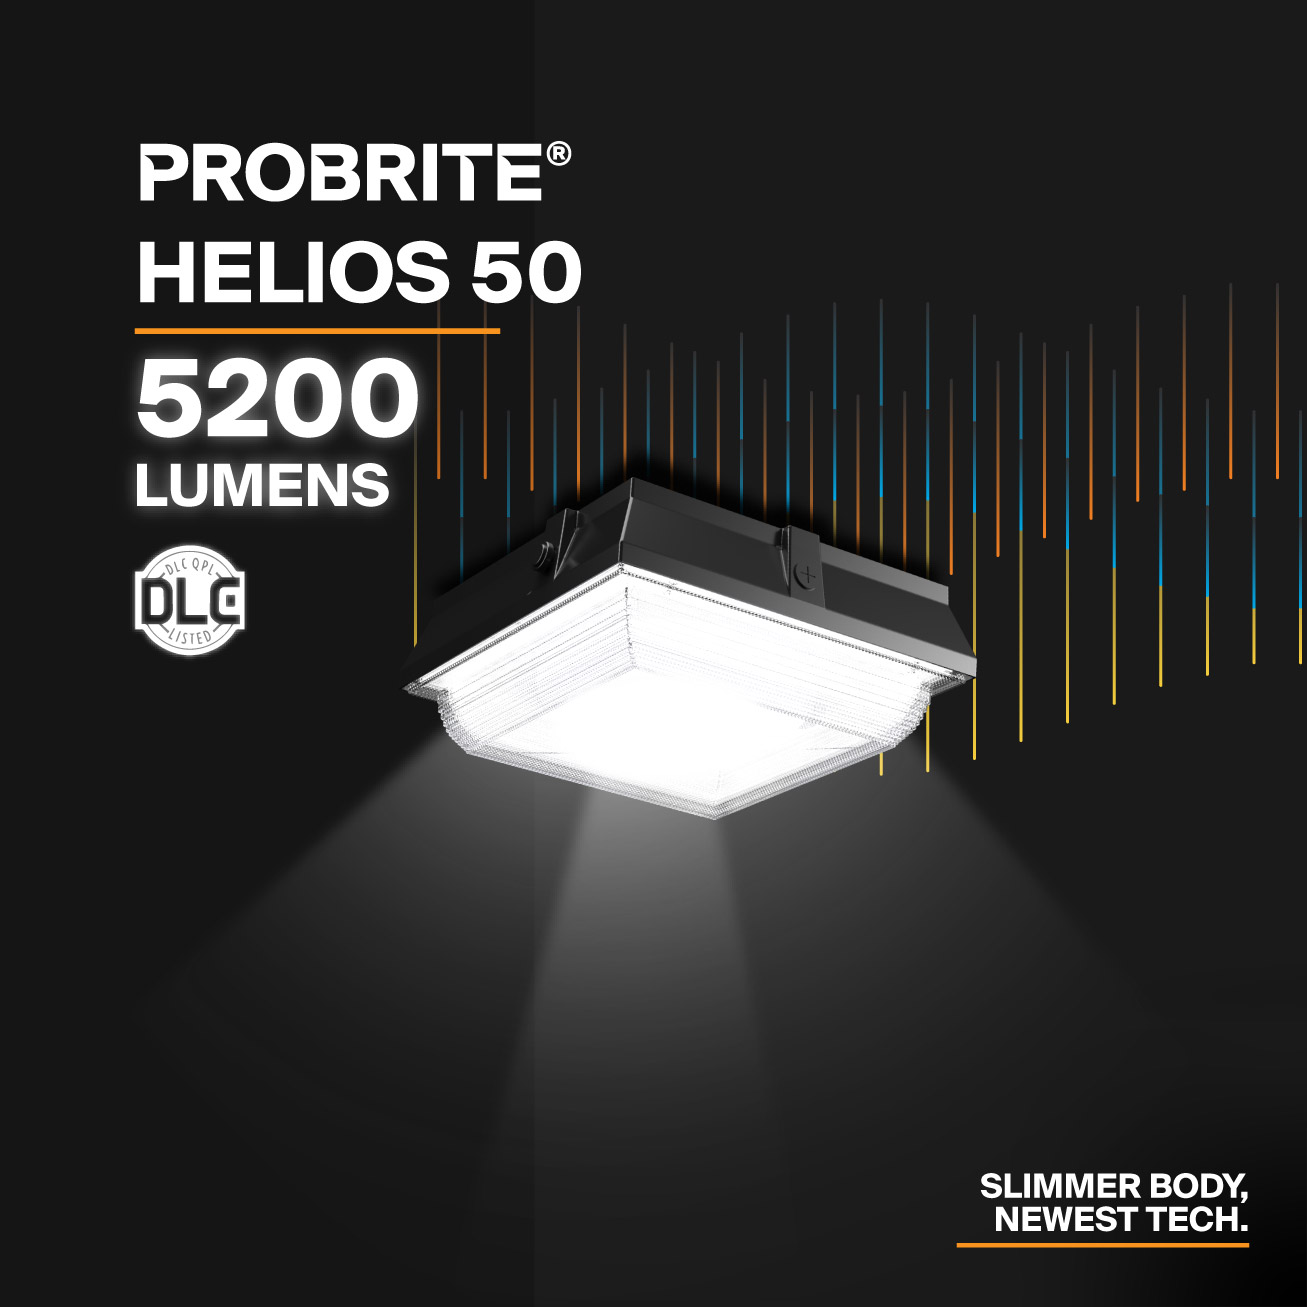 Probrite Helios50 LED Ceiling Light Slim Body